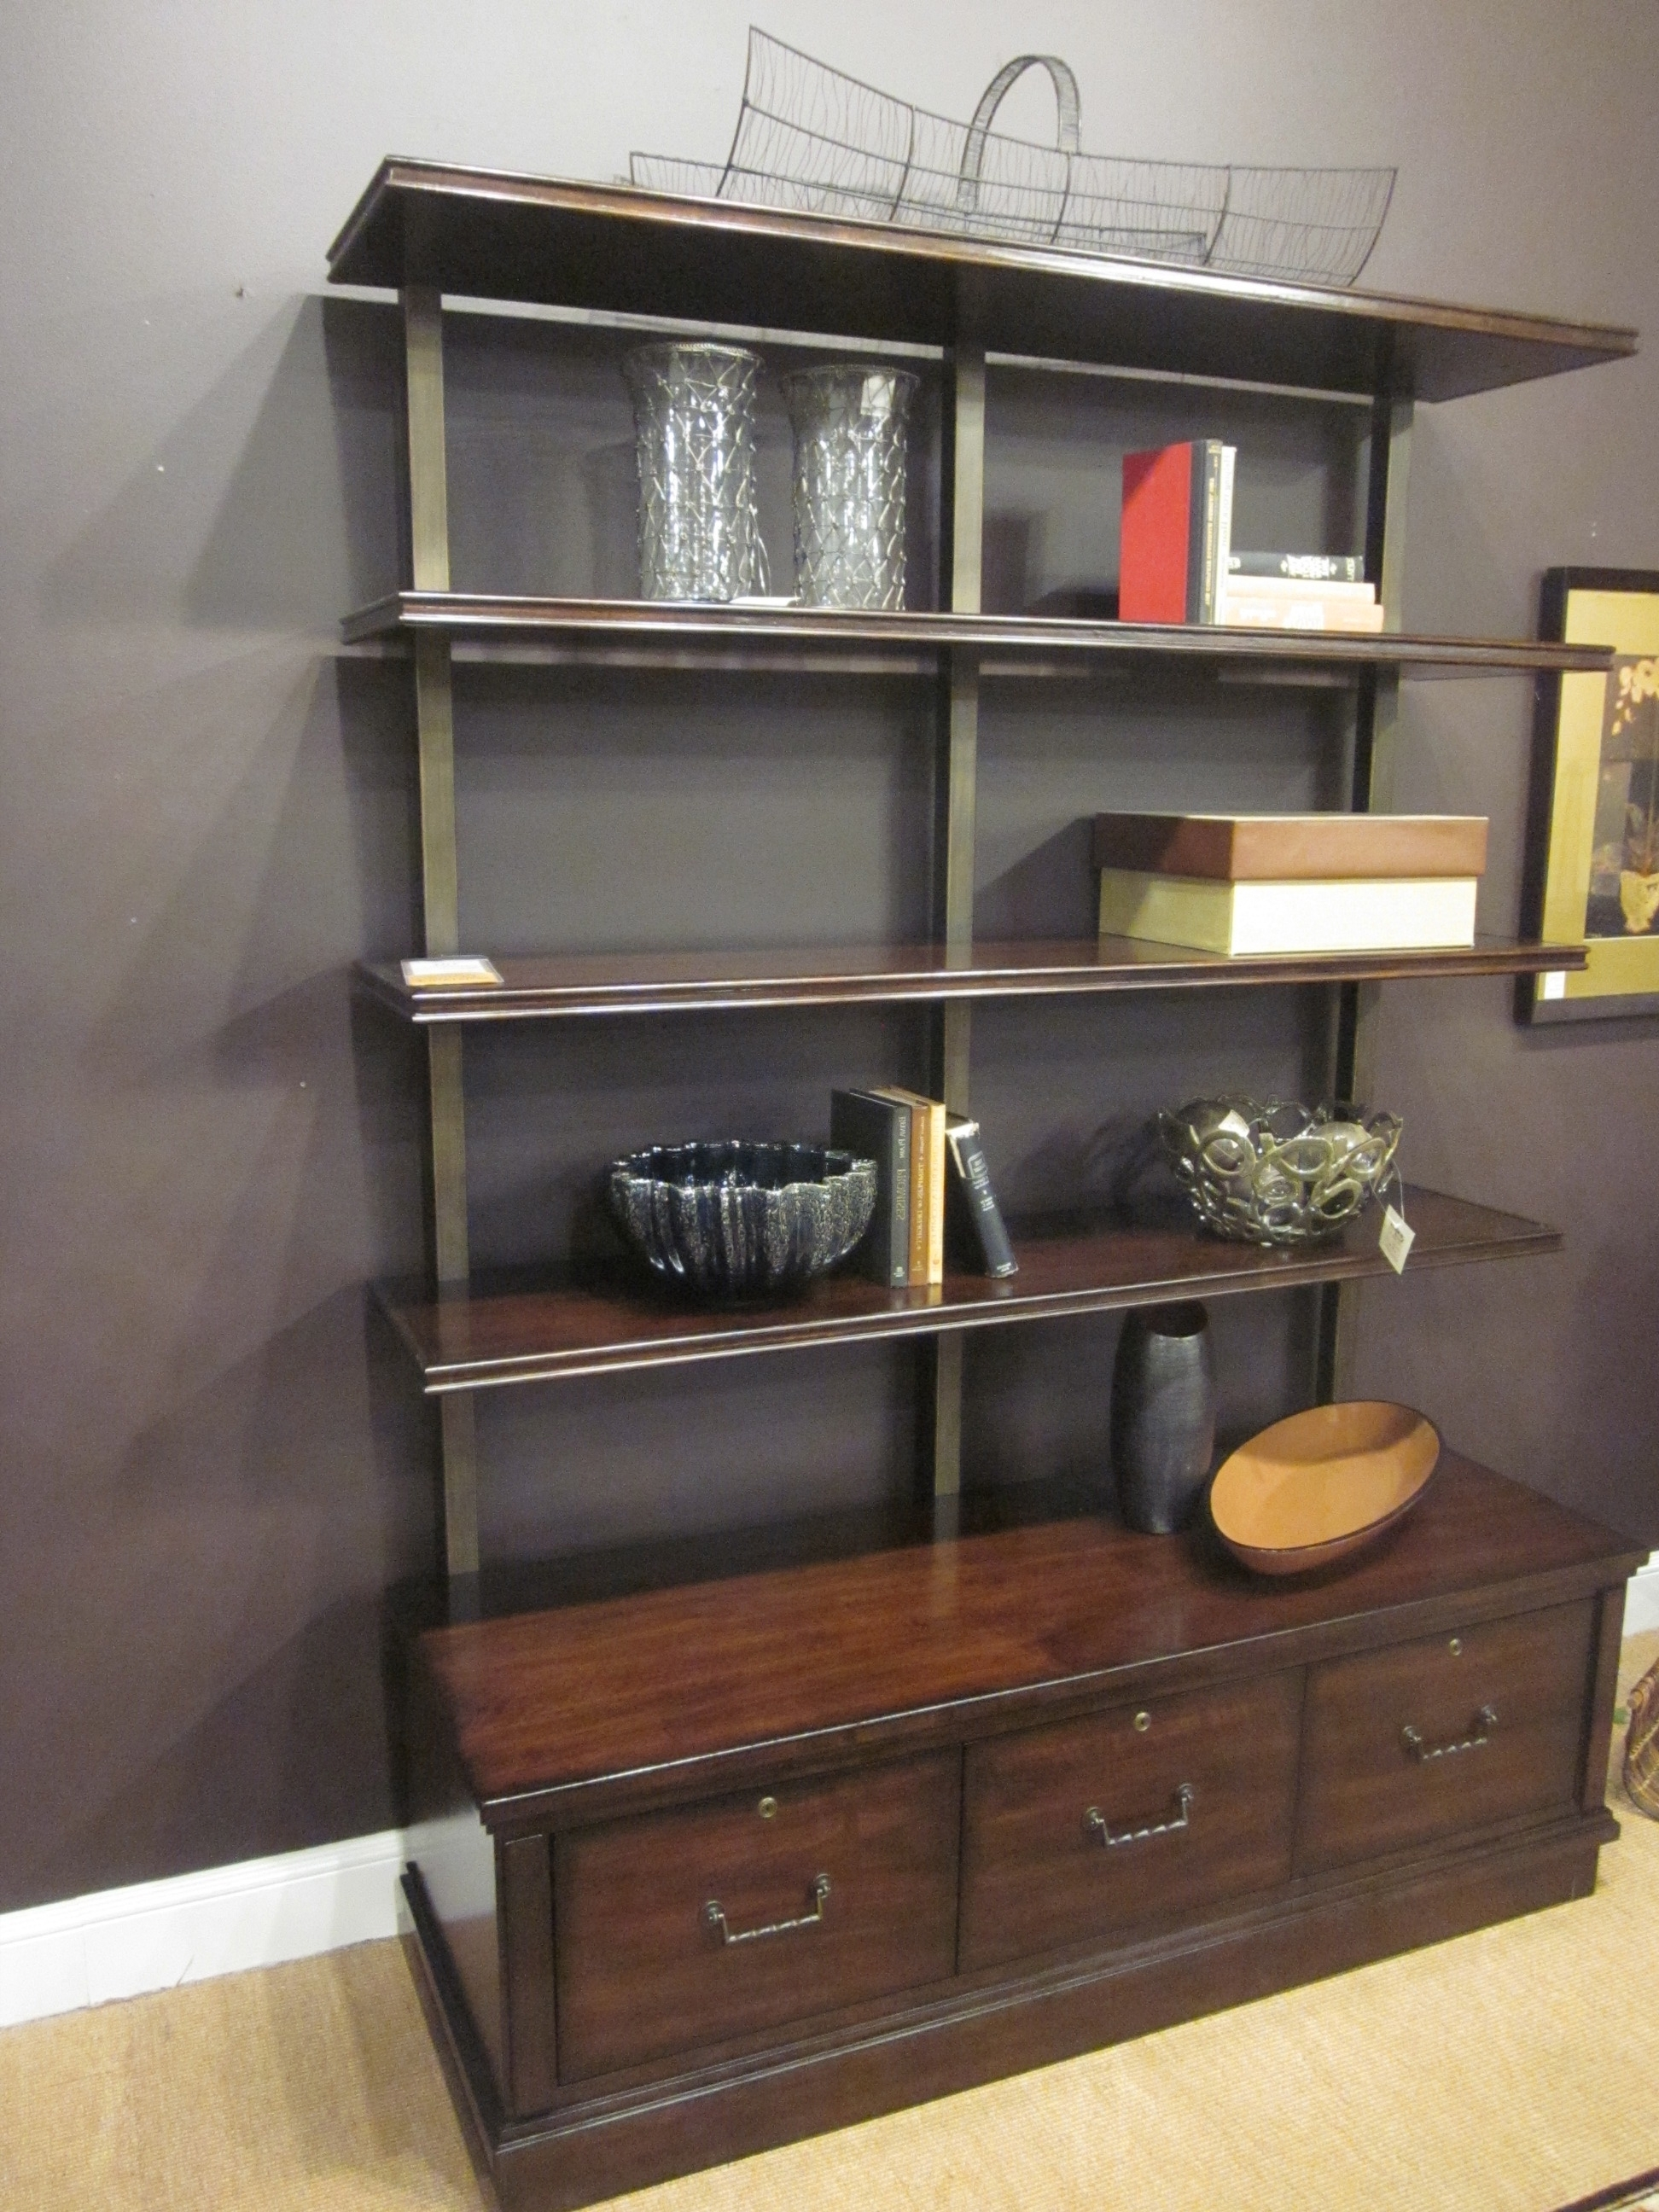 Hooker Furniture Palisade Bookcase In Figured Walnut, 3 Locking Pertaining To 2017 Locking Bookcases (View 4 of 15)